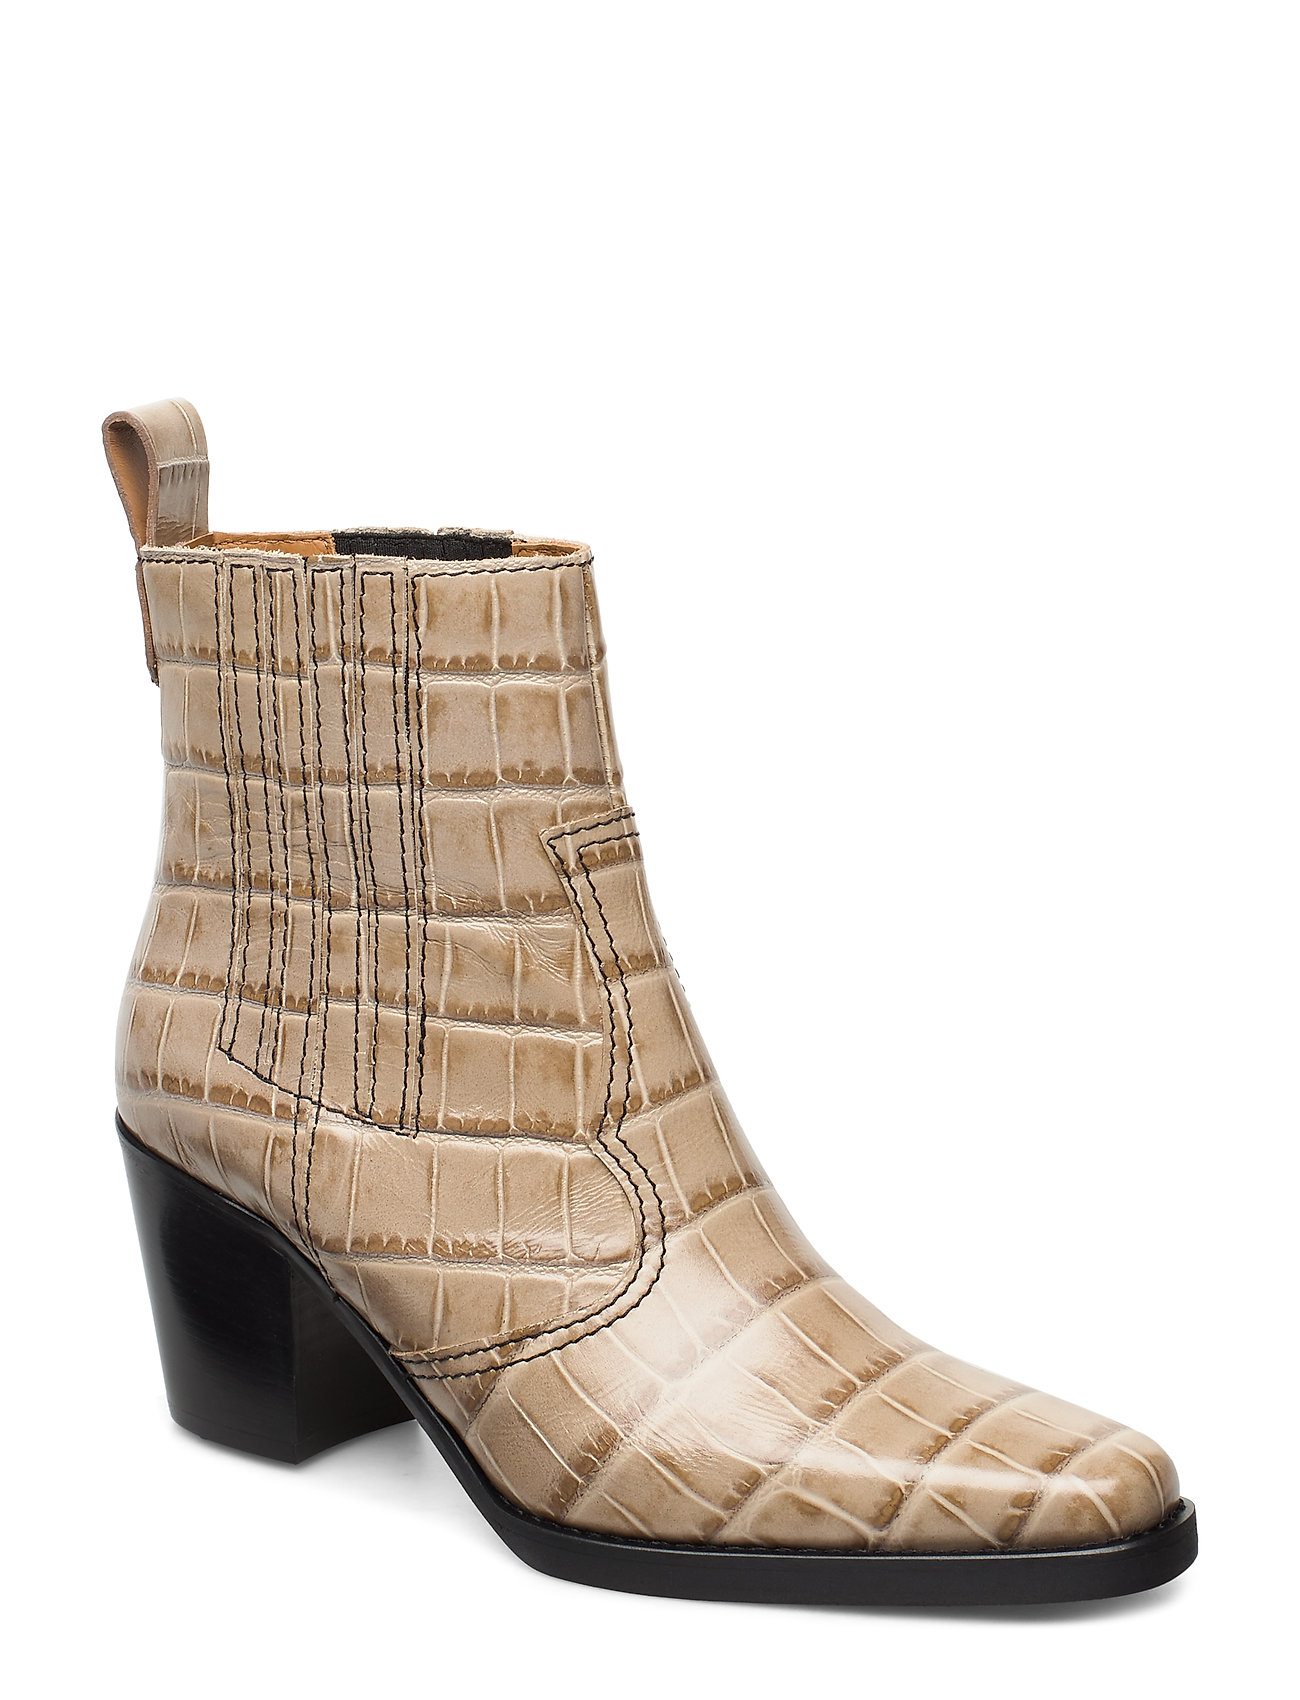 Image of Western Ankle Boots Shoes Boots Ankle Boots Ankle Boots With Heel Beige Ganni (3288857669)